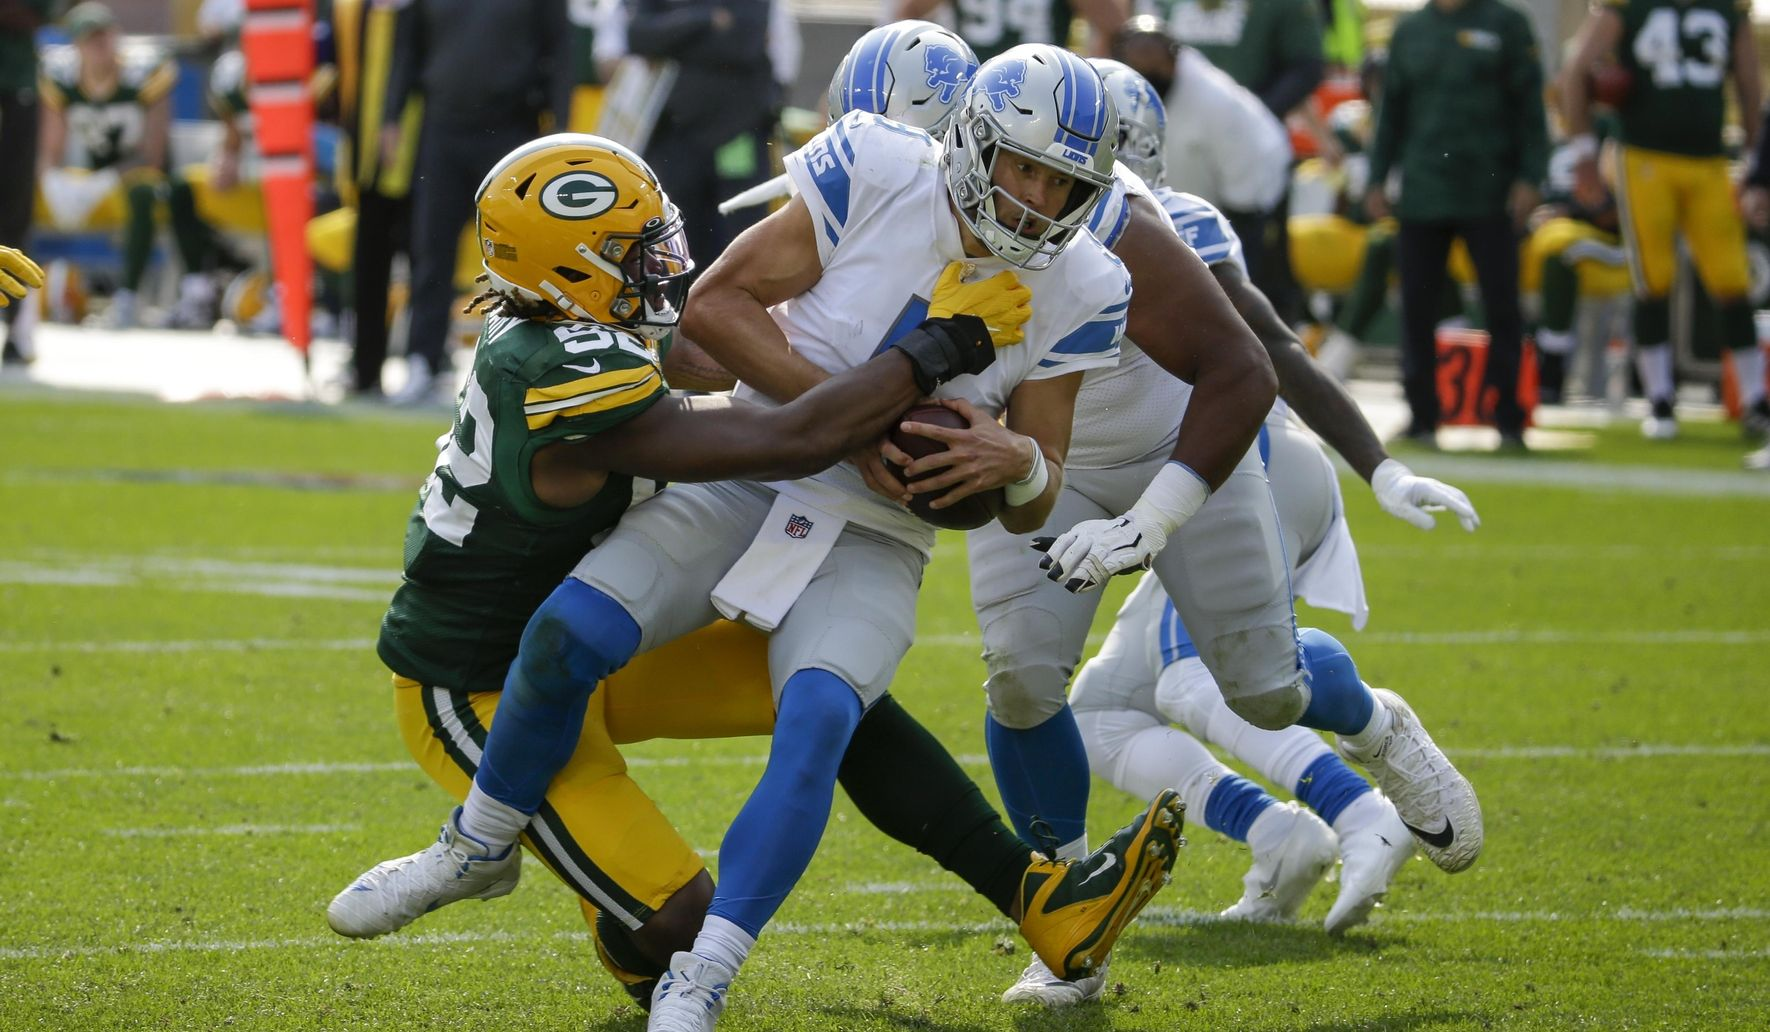 Lions_packers_football_58323_c0-168-4025-2514_s1770x1032